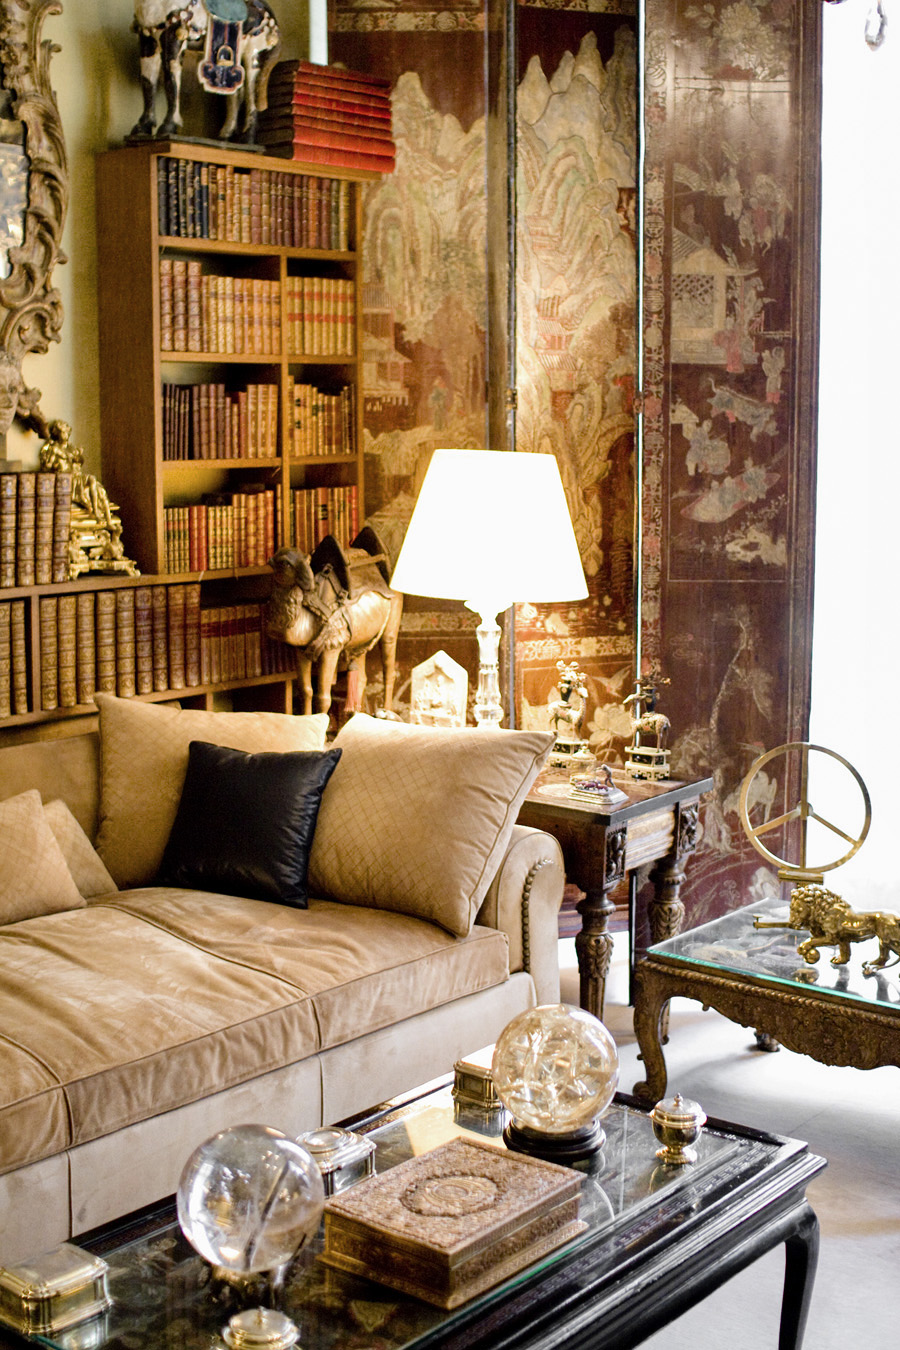 Park-and-Cube_Coco-Chanel-Apartment_007